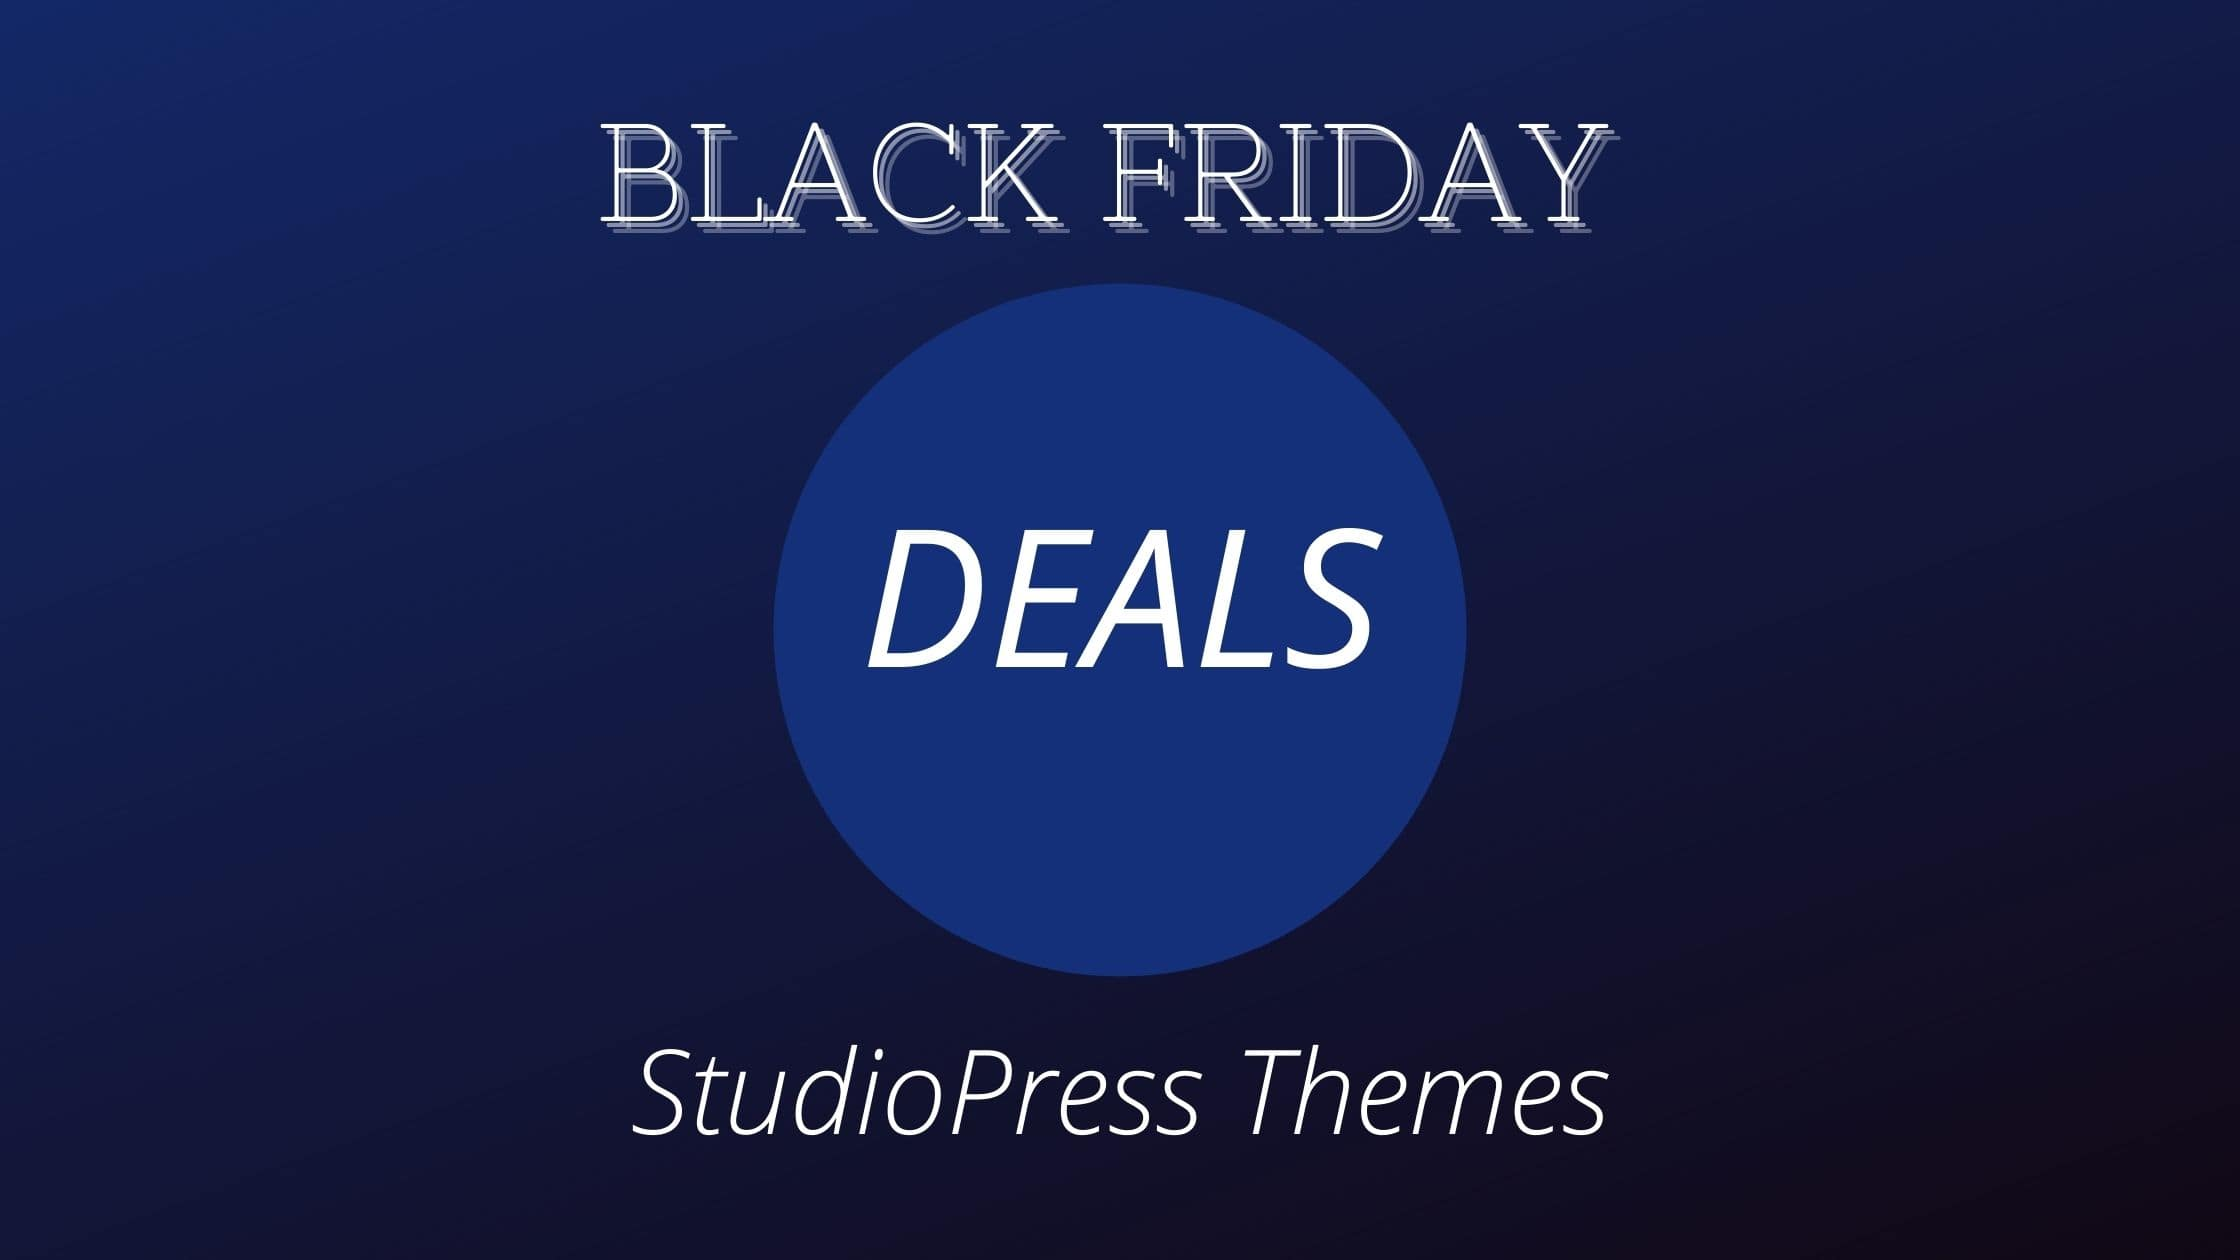 StudioPress Black Friday Deals 2020- 45% Off on Excellent Designs image